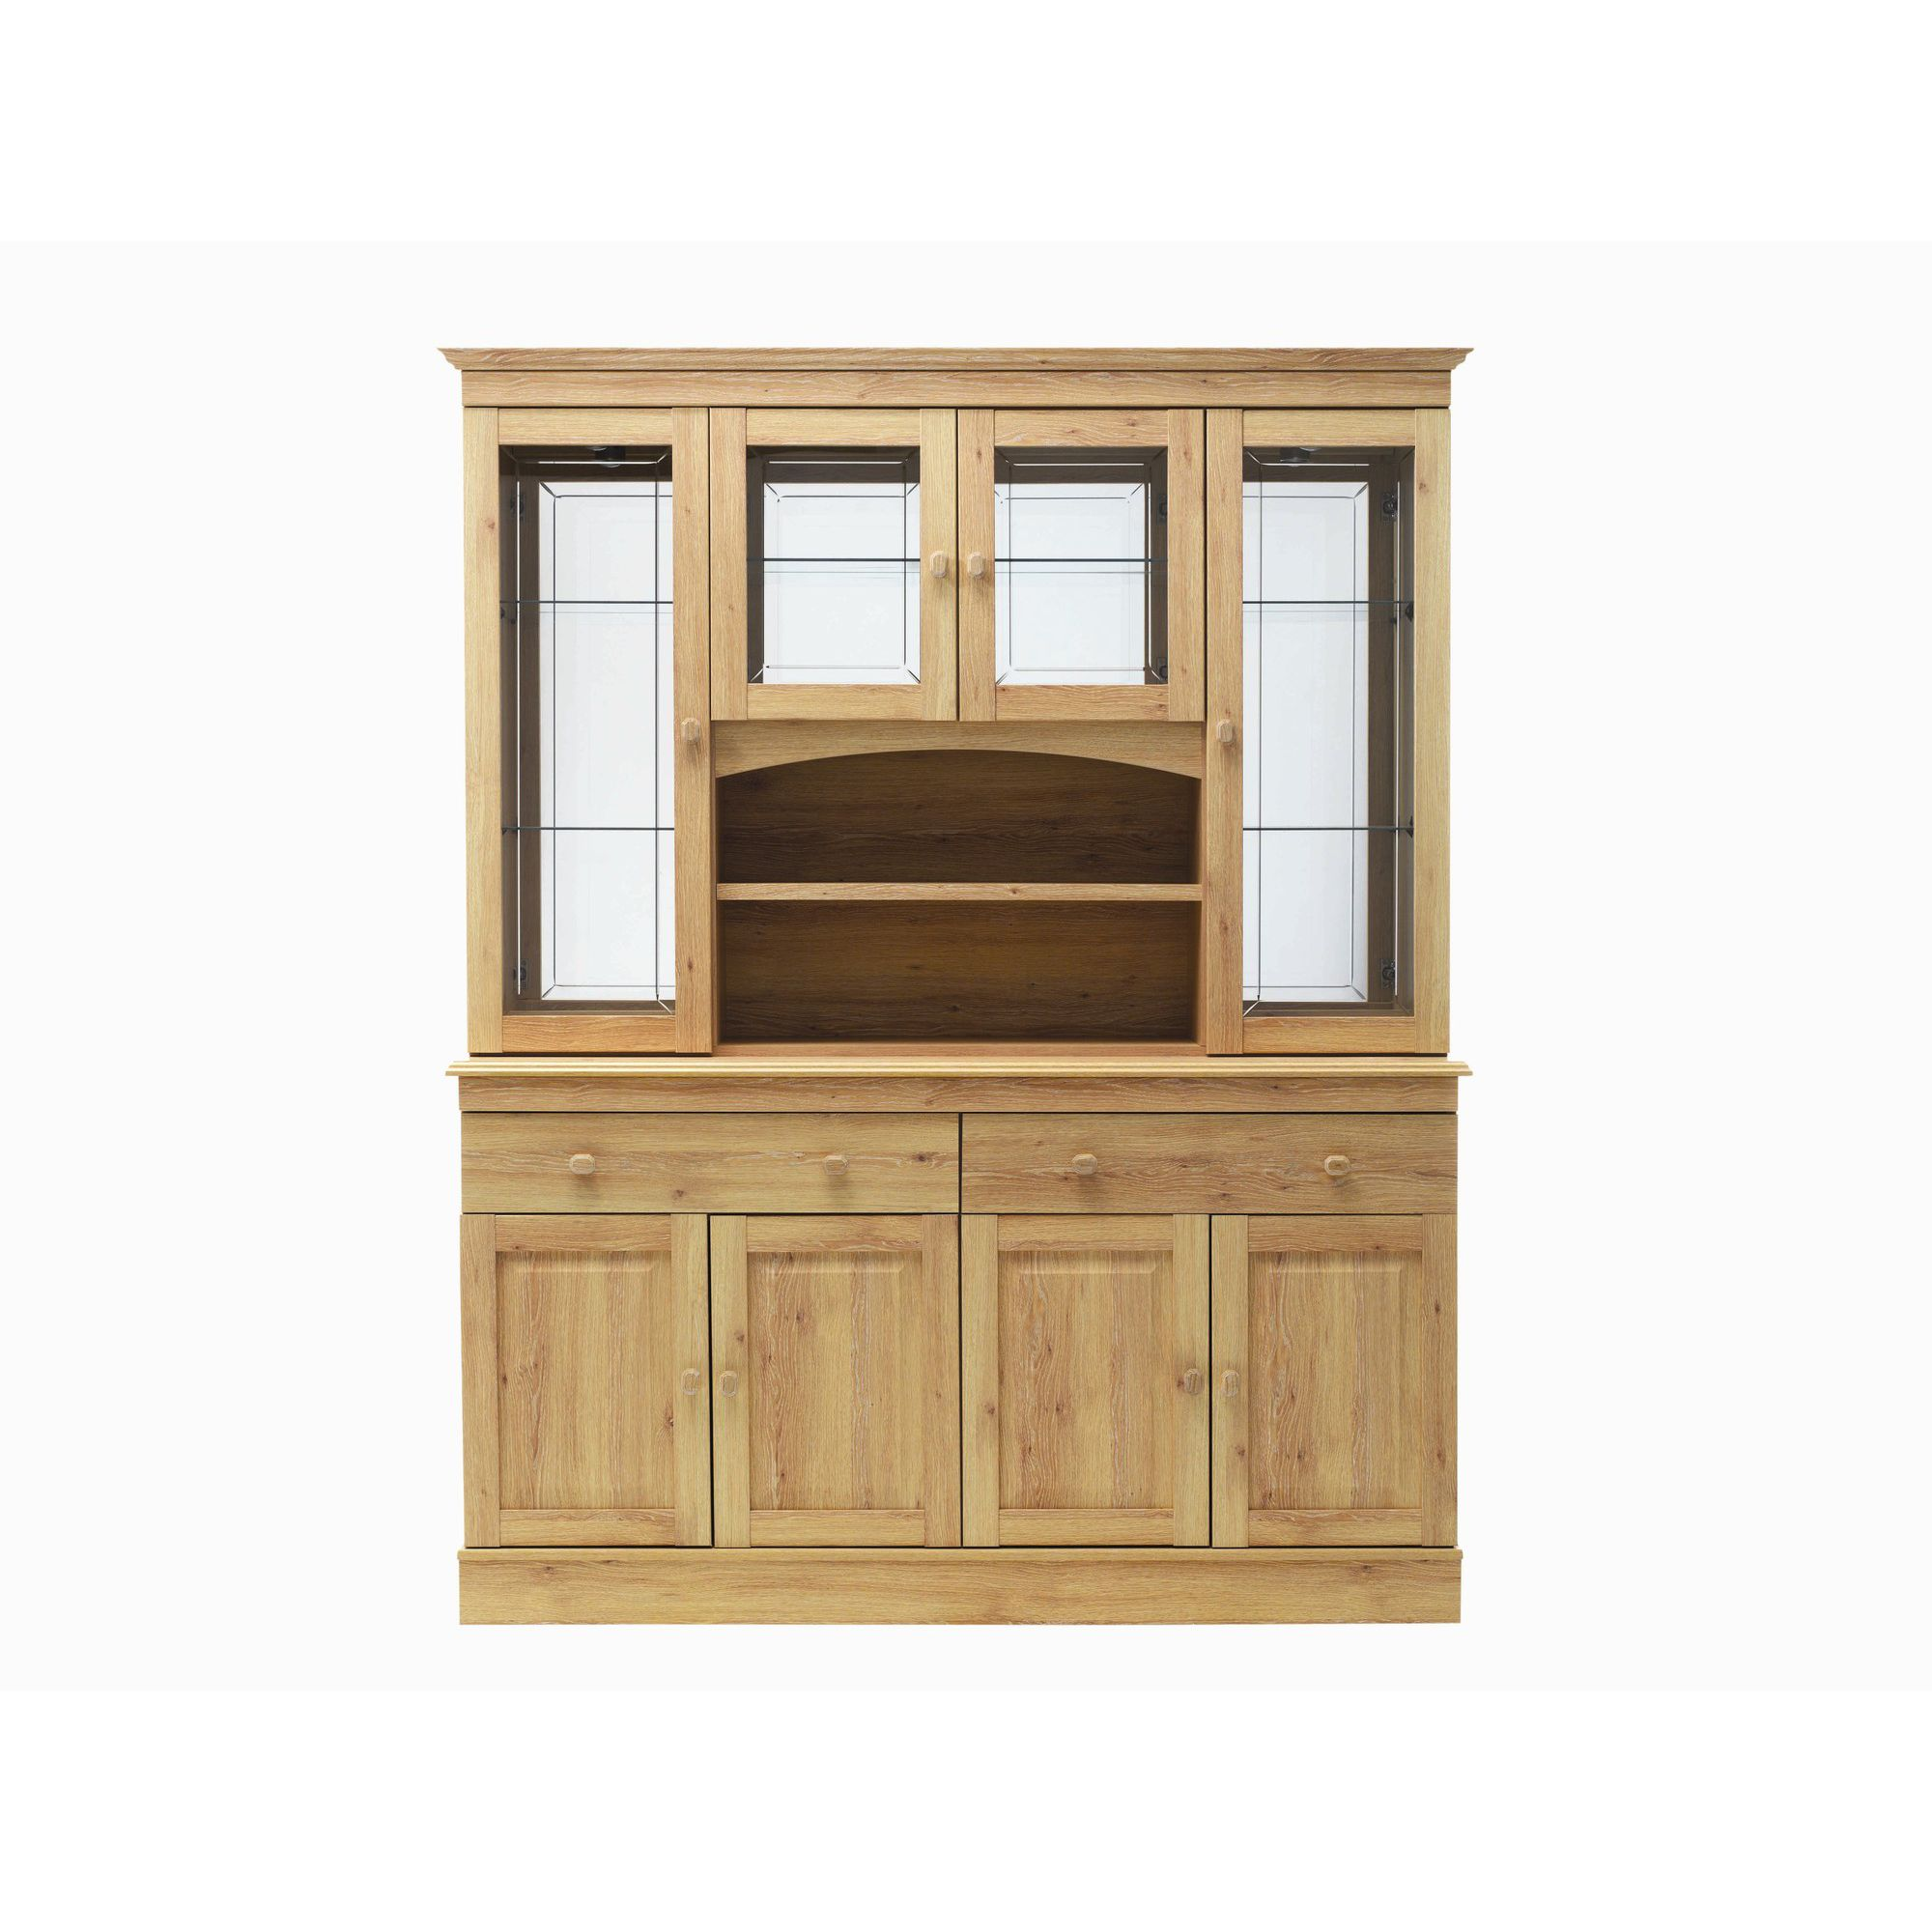 Caxton Driftwood 152 cm Display Cabinet in Limed Oak at Tesco Direct